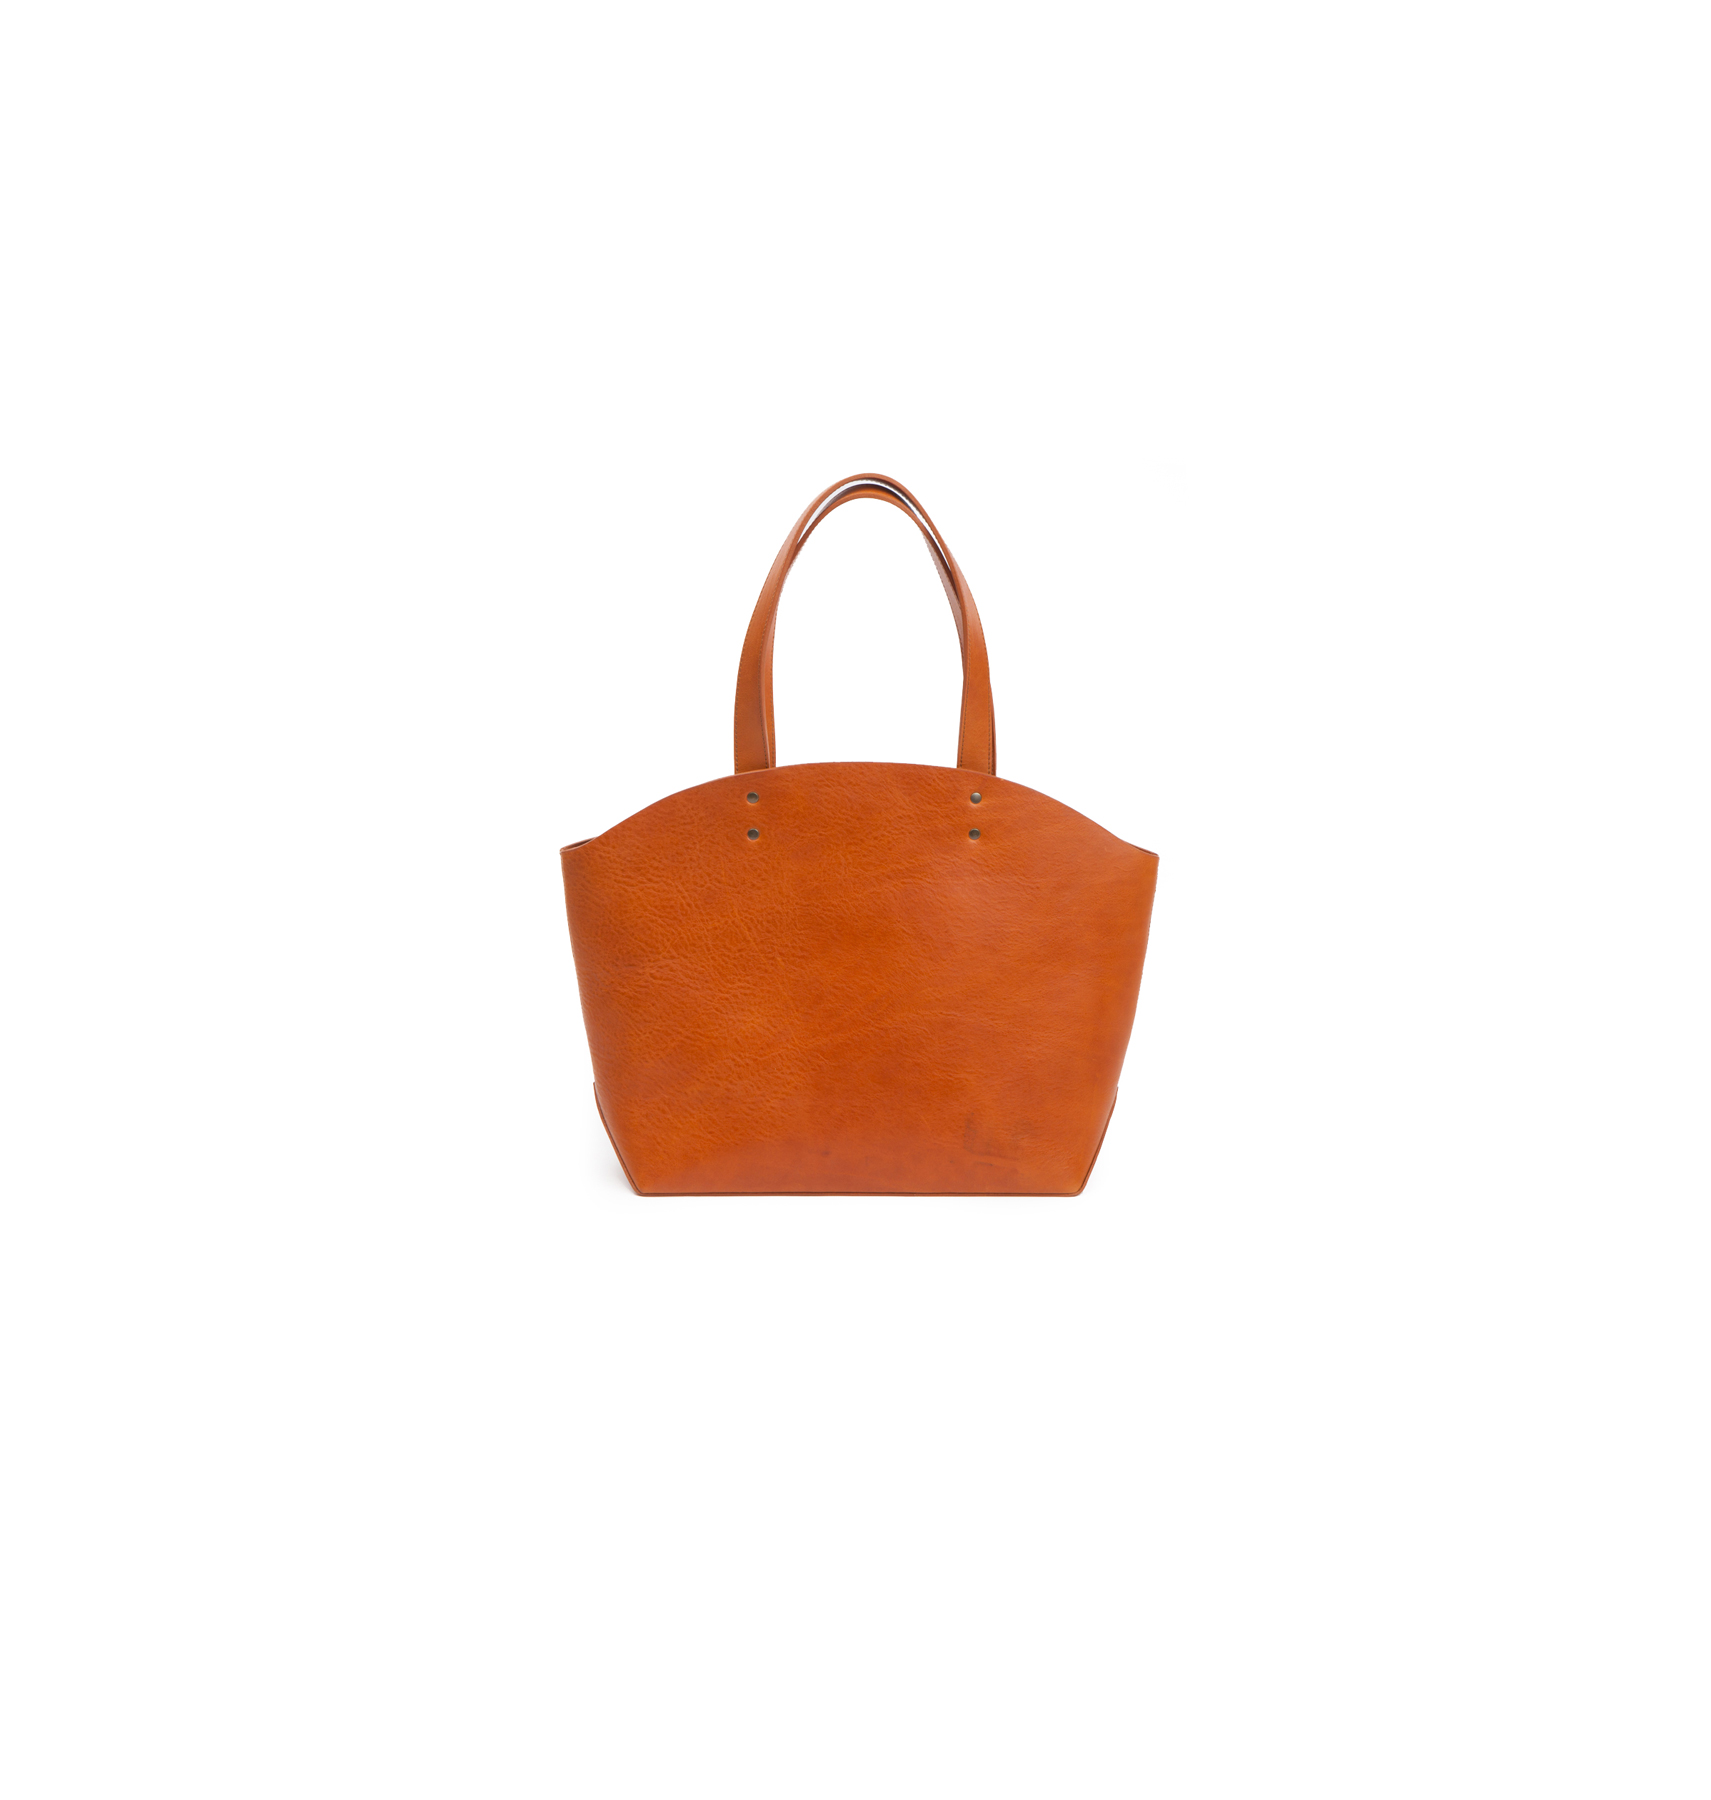 08a4b6fac95 Best Splurge: Moore & Giles Welden Tote in Virginia Natural